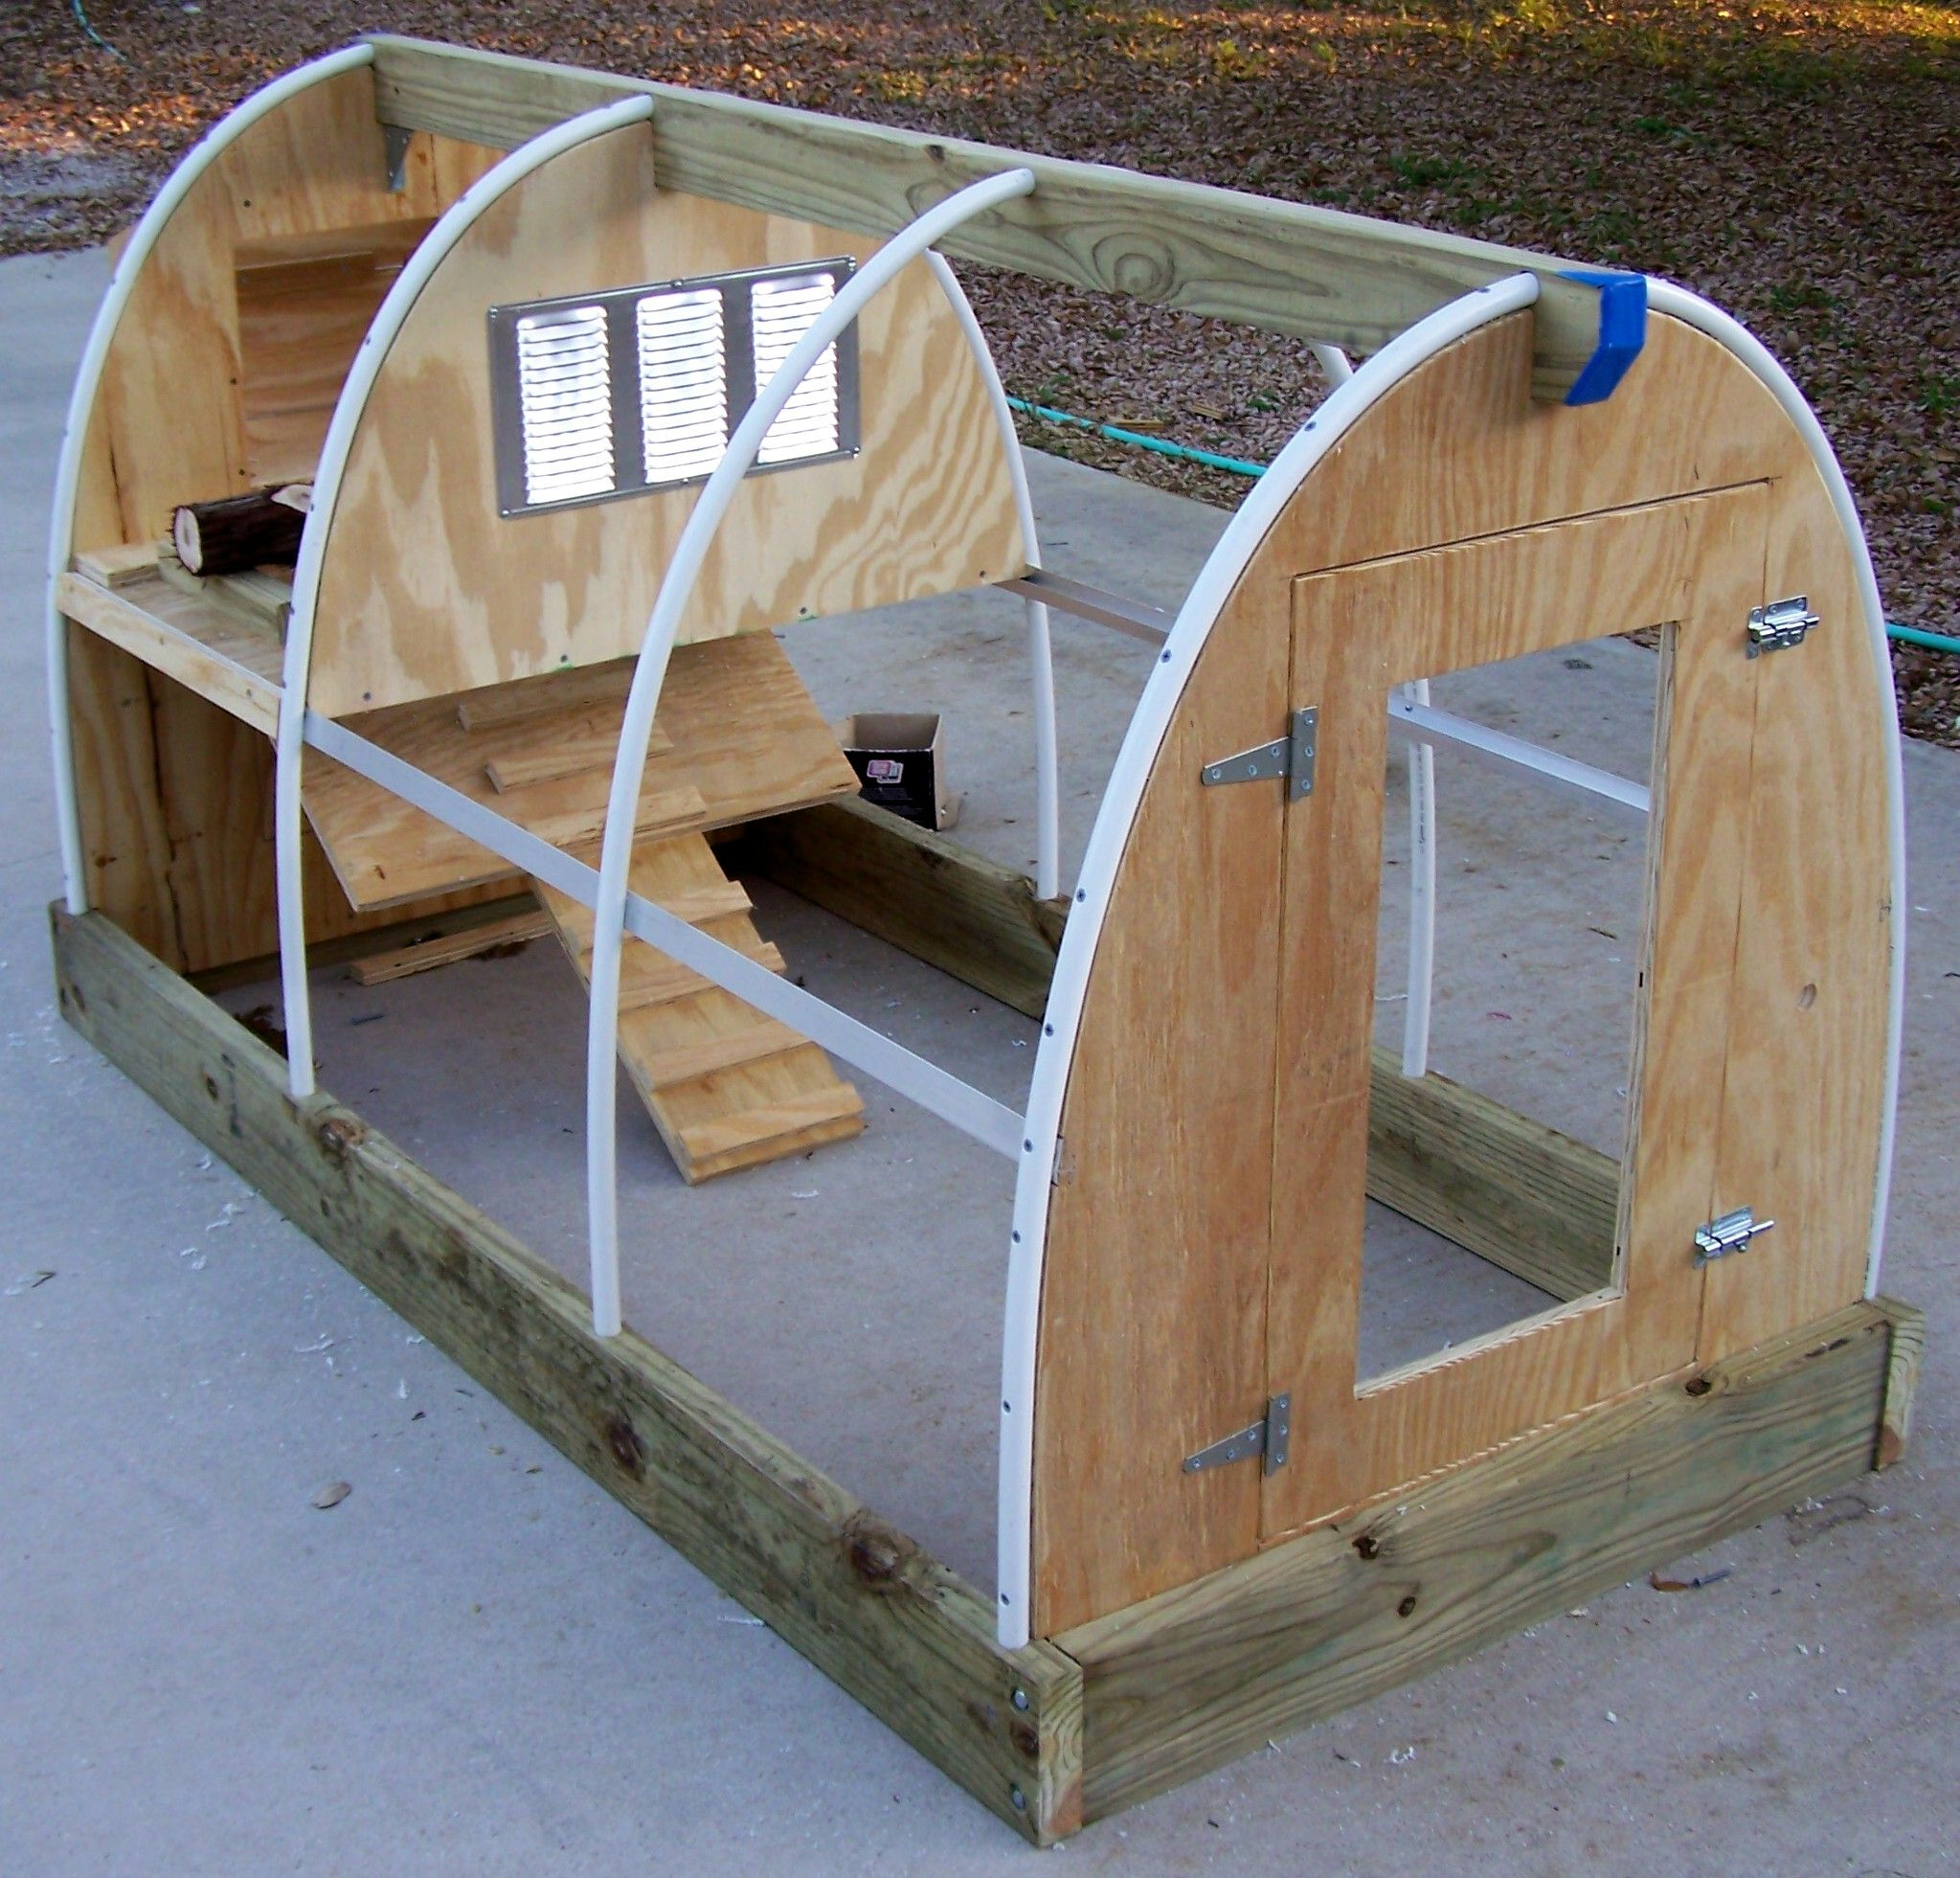 Diy chicken coops plans that are easy to build diy for Plans for chicken coops